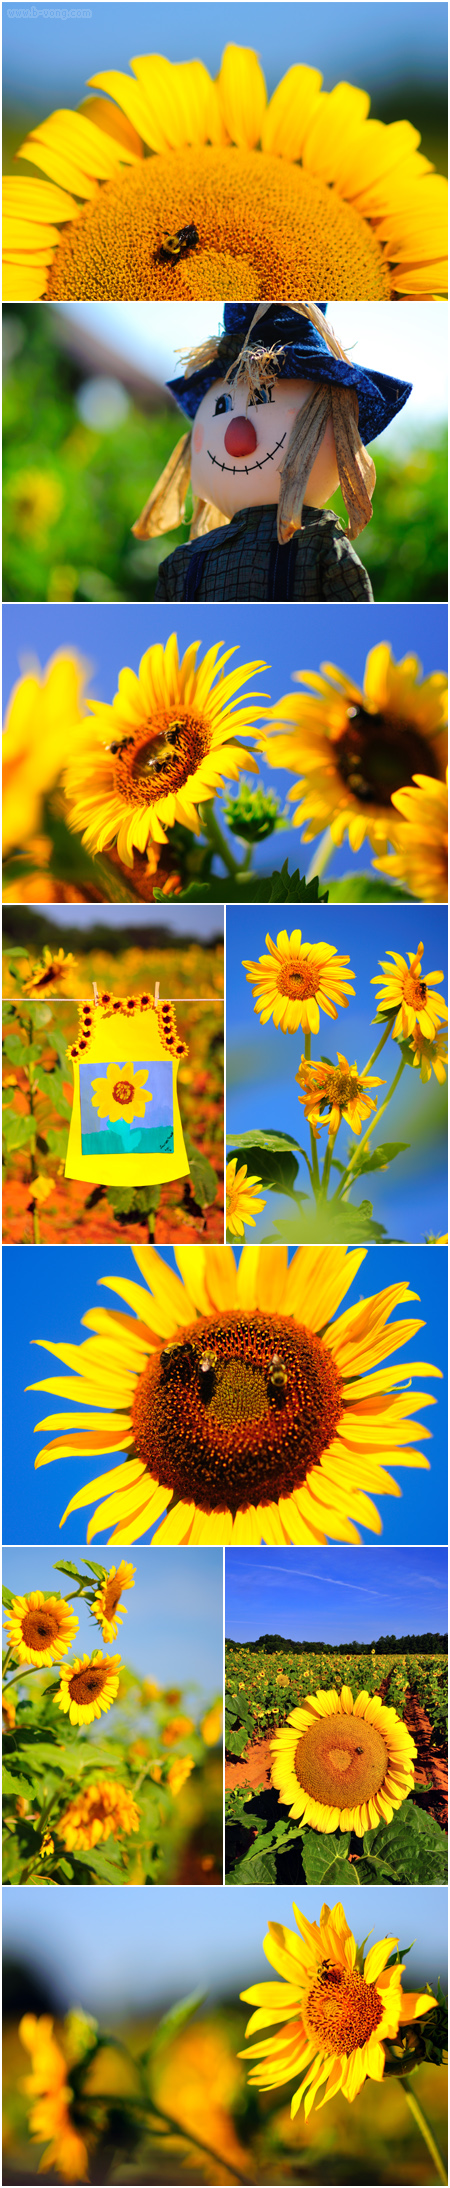 bvong_pix_sunflowers_09